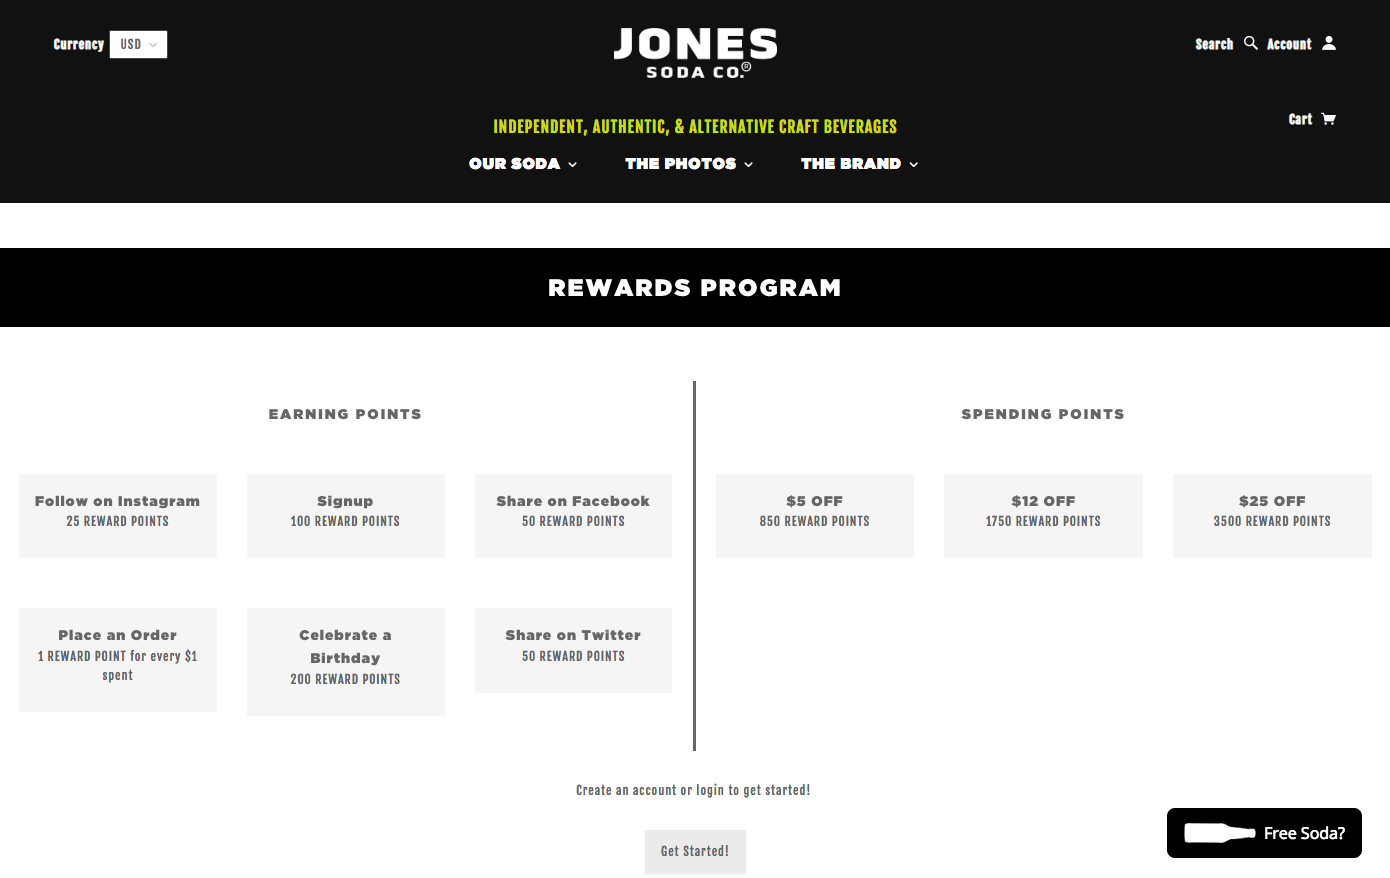 The Best eCommerce Loyalty Programs - Jones Soda